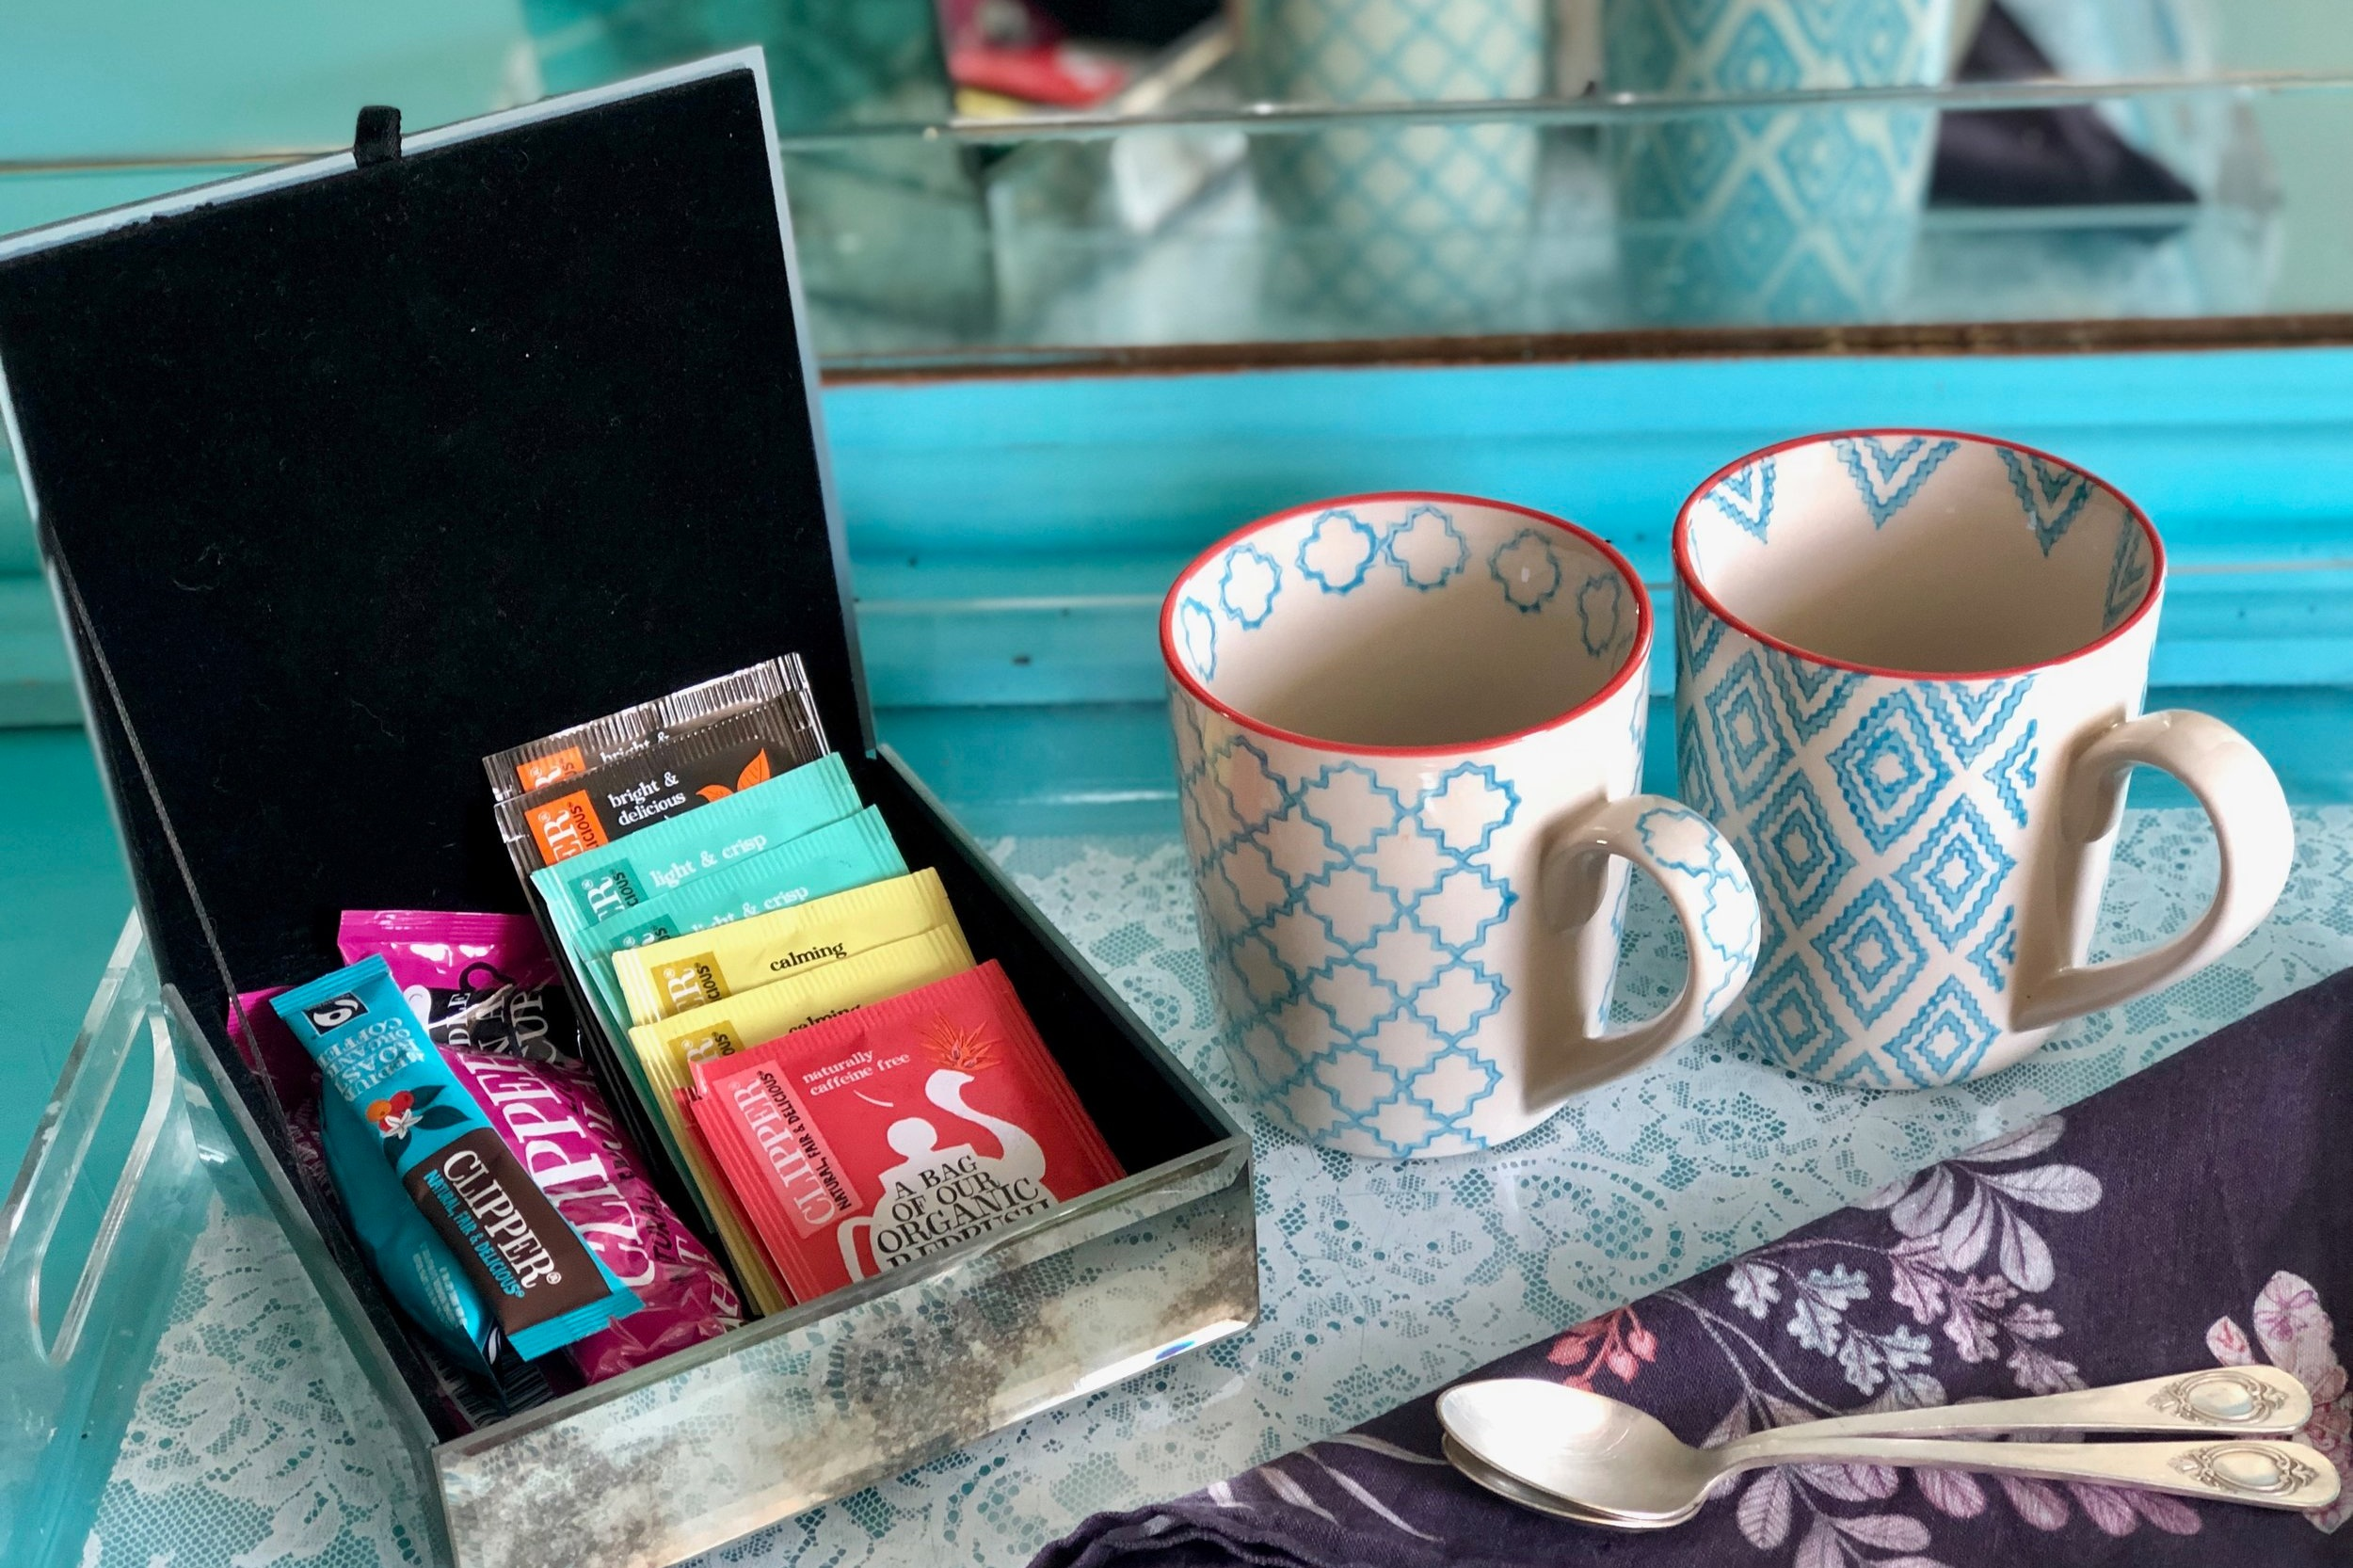 Hot drinks & HOusekeeping - Enjoy our selection of of organic Clipper hot drinks, tea, coffee and hot chocolate. Available in your room and refilled every morning.Our daily housekeeping service keeps your room spick and span so you can have more time to do the fun stuff.